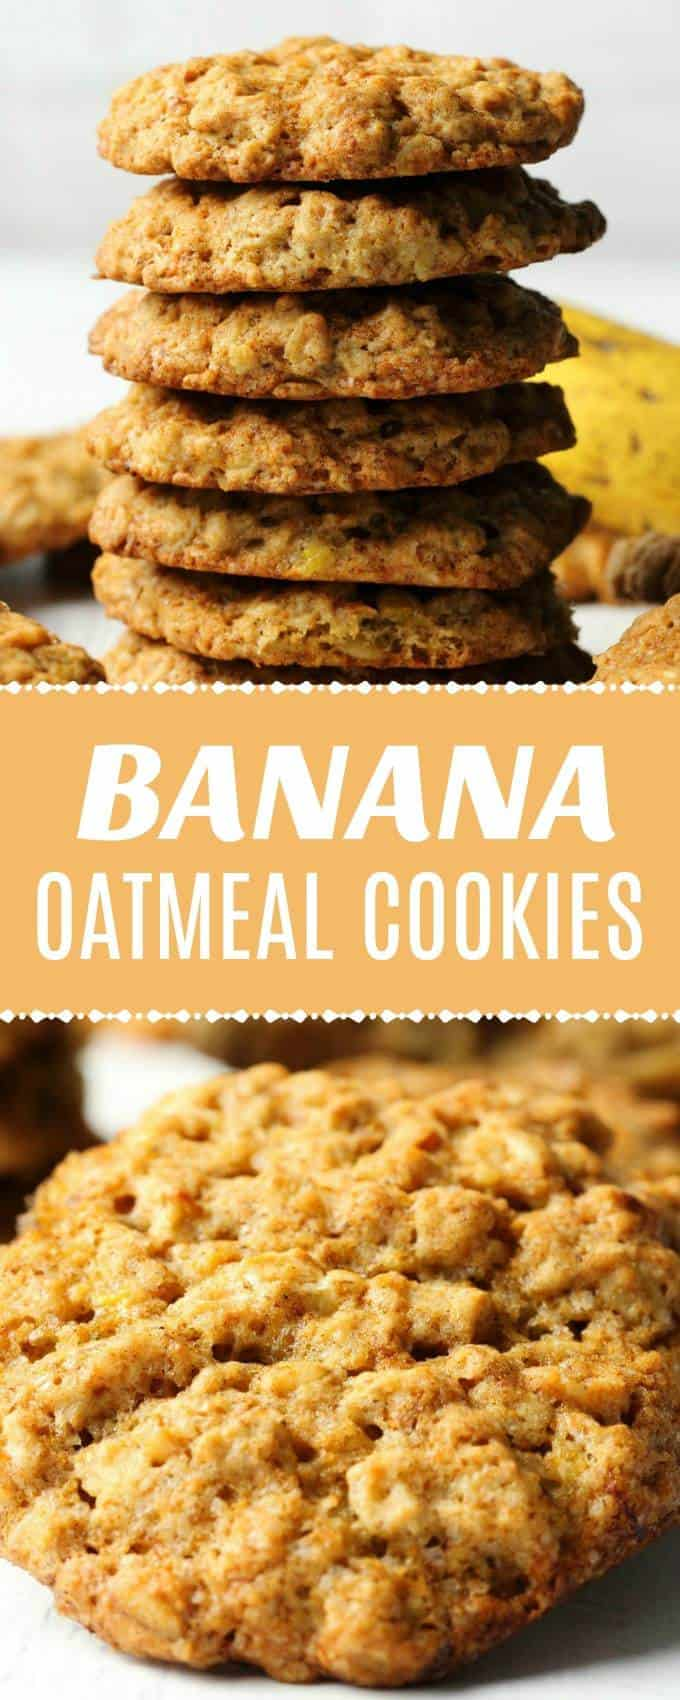 Vegan banana oatmeal cookies that are soft and chewy and packed with banana flavor. These cookies are simple and ideal for either breakfast or dessert. #vegan #vegancookies #dairyfree #veganrecipes  lovingitvegan.com